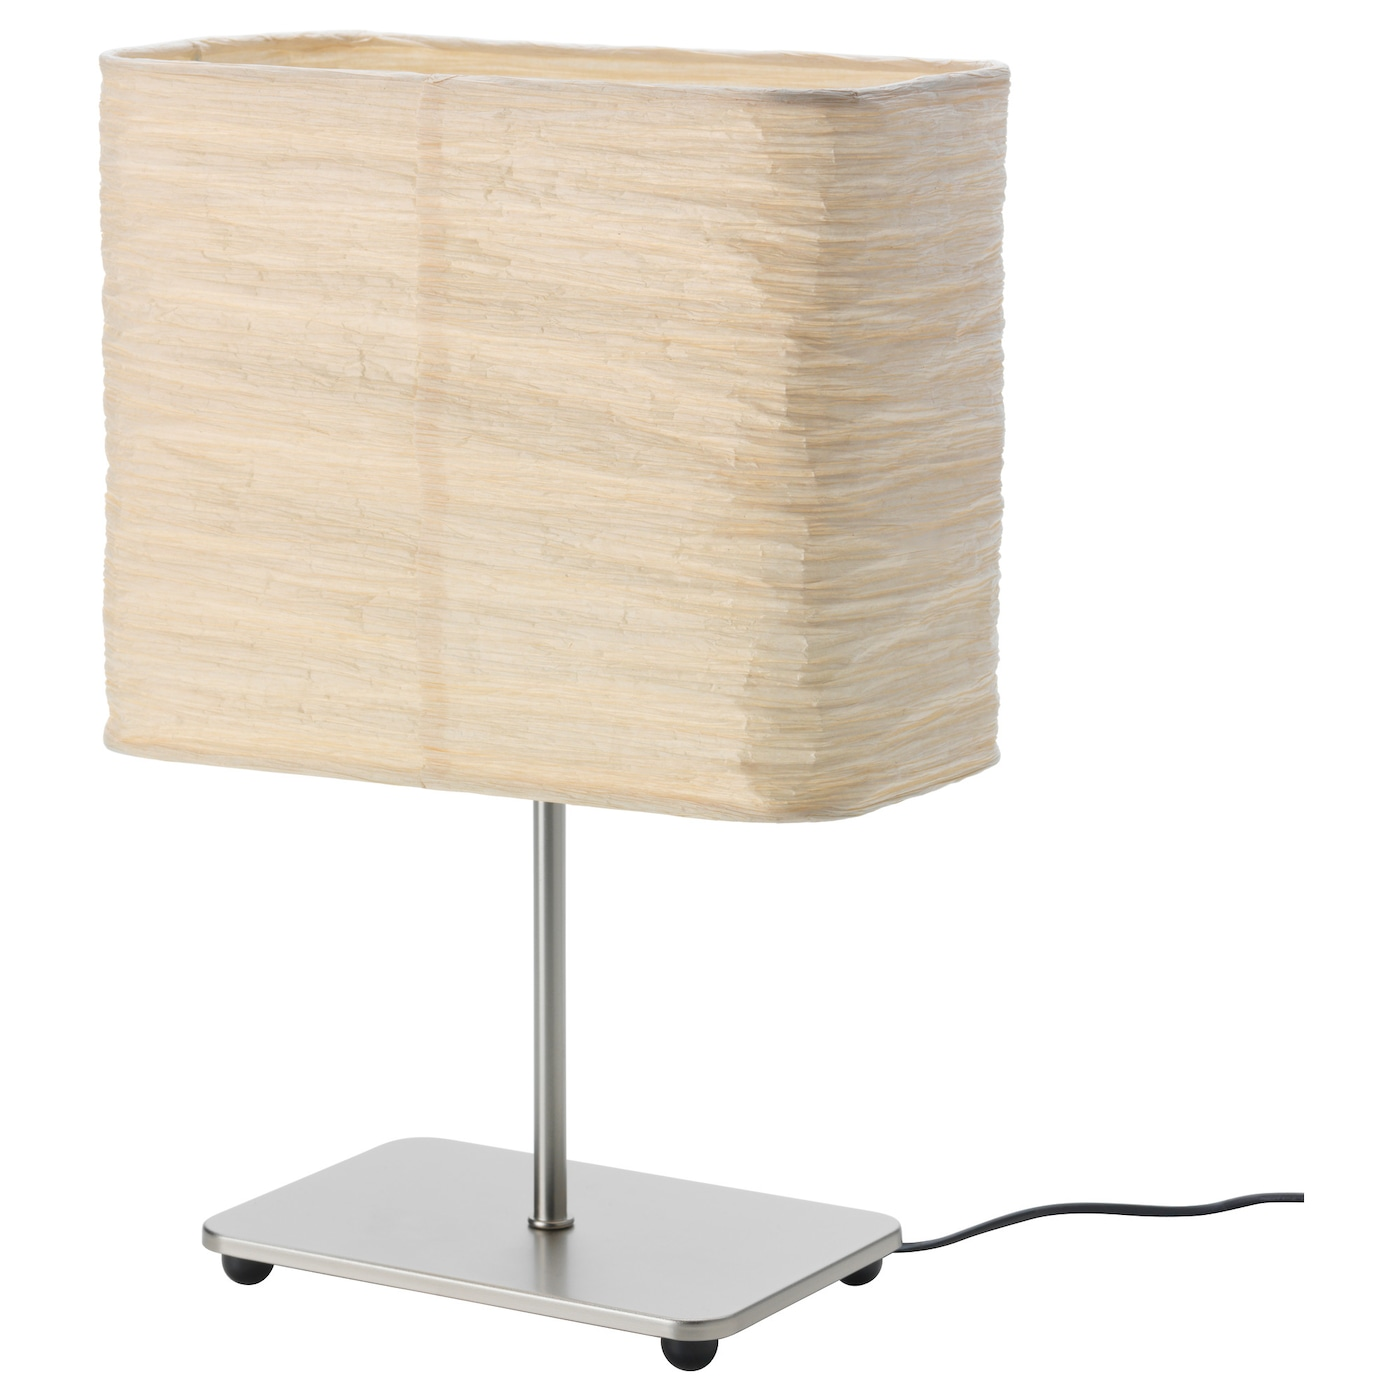 ikea magnarp table lamp - Table Lamps